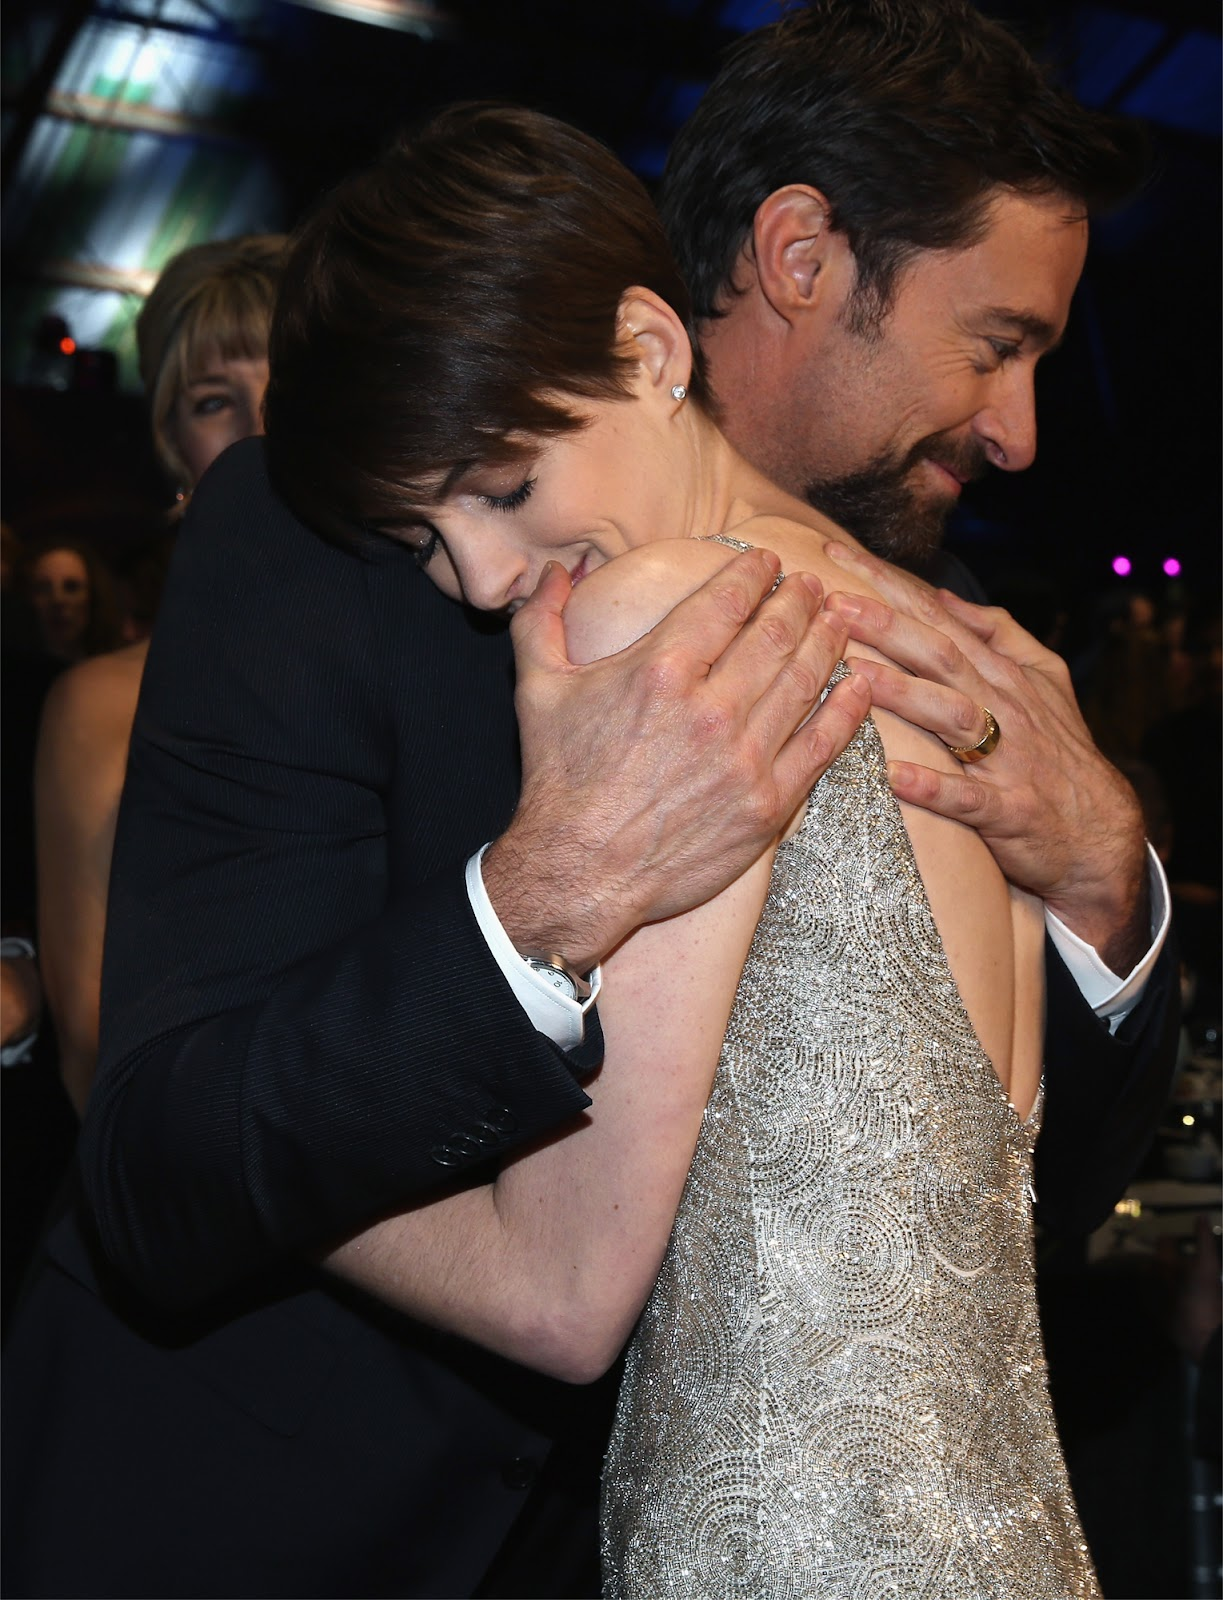 http://1.bp.blogspot.com/-LWRt7oQTdz0/UPAHRyB5P6I/AAAAAAABQMc/SkrHitUAqpQ/s1600/Anne_Hathaway-Hugh_Jackman-Critics_Choice_Awards-January_10th-2013.jpg